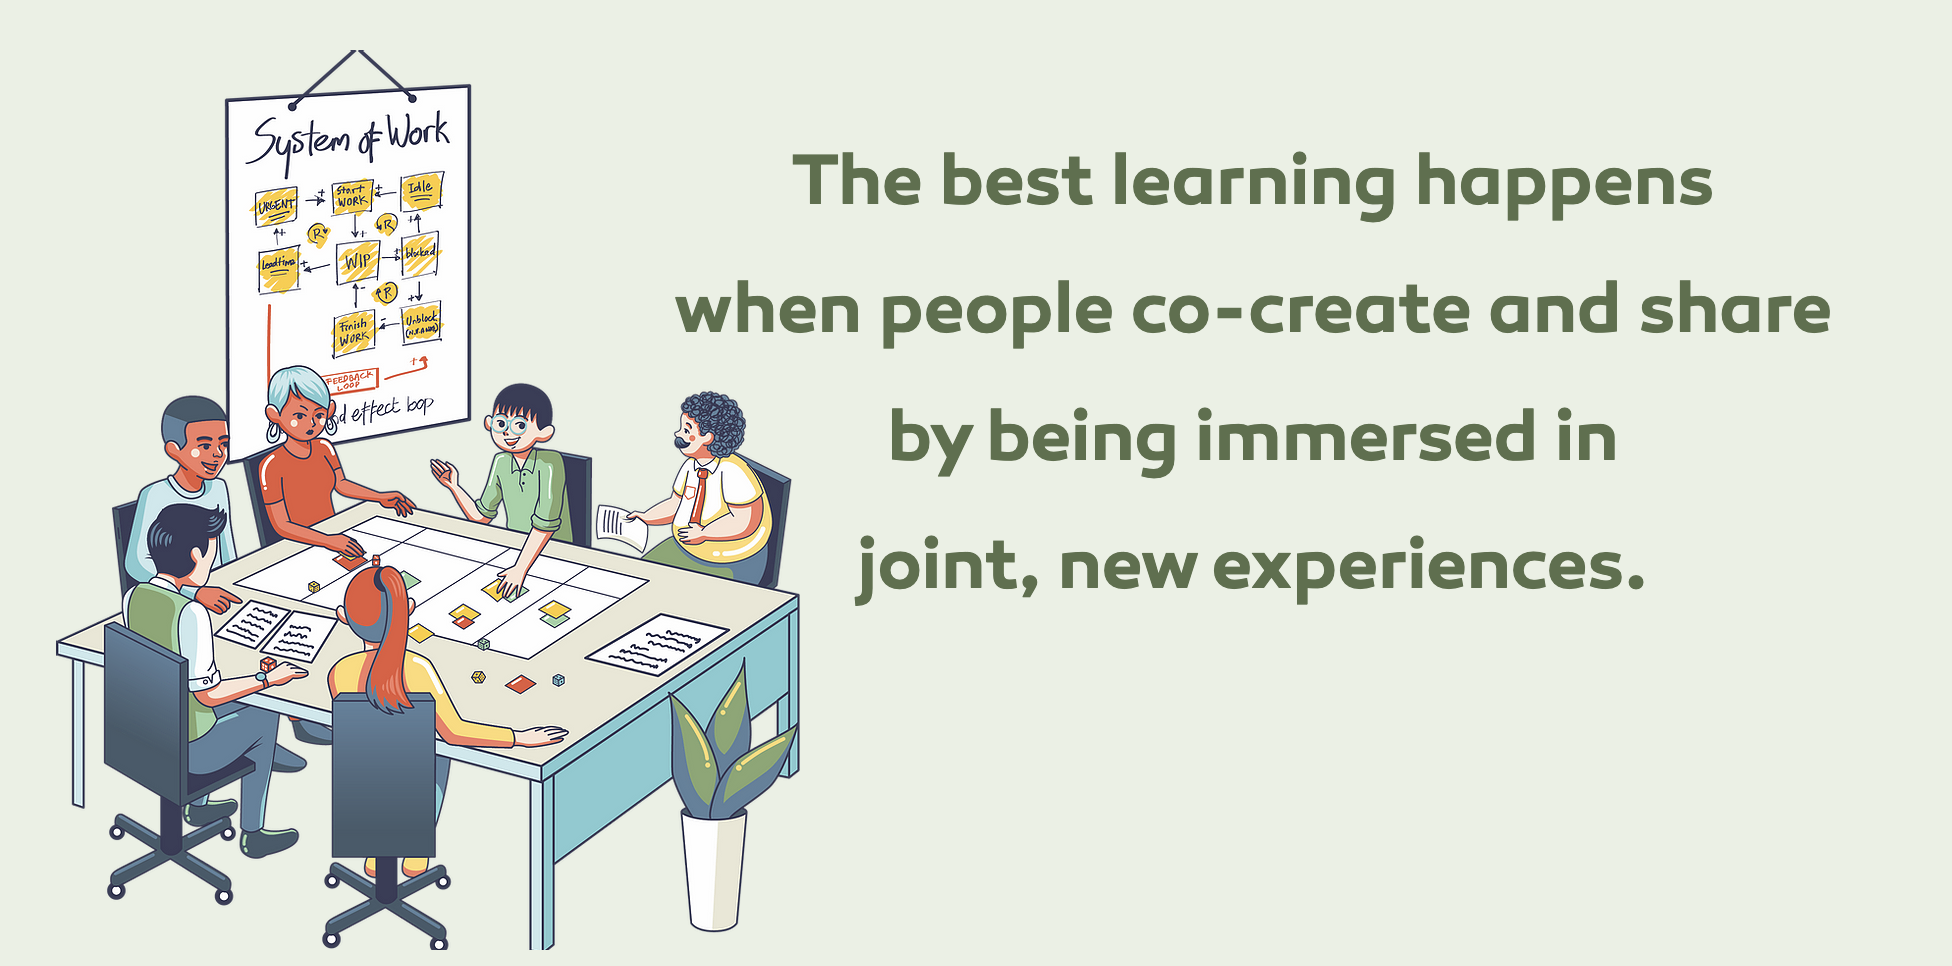 Learning by experimenting